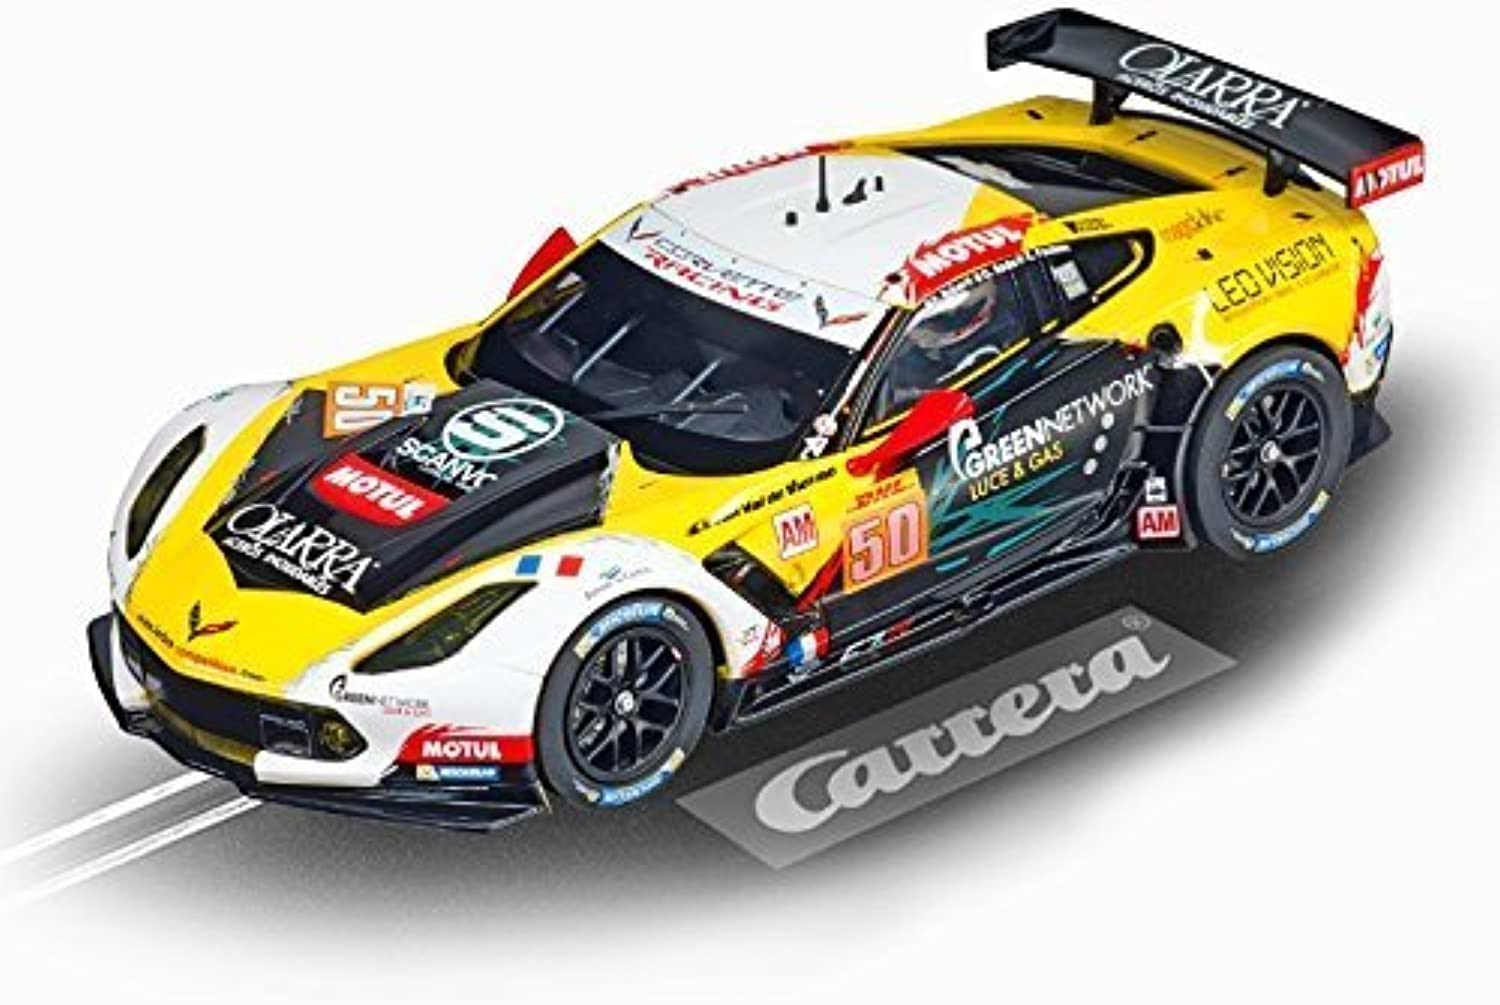 Digital 124 Chevrolet Corvette C7.R No.50 - 1 24 Scale Slot Car by Carrera USA